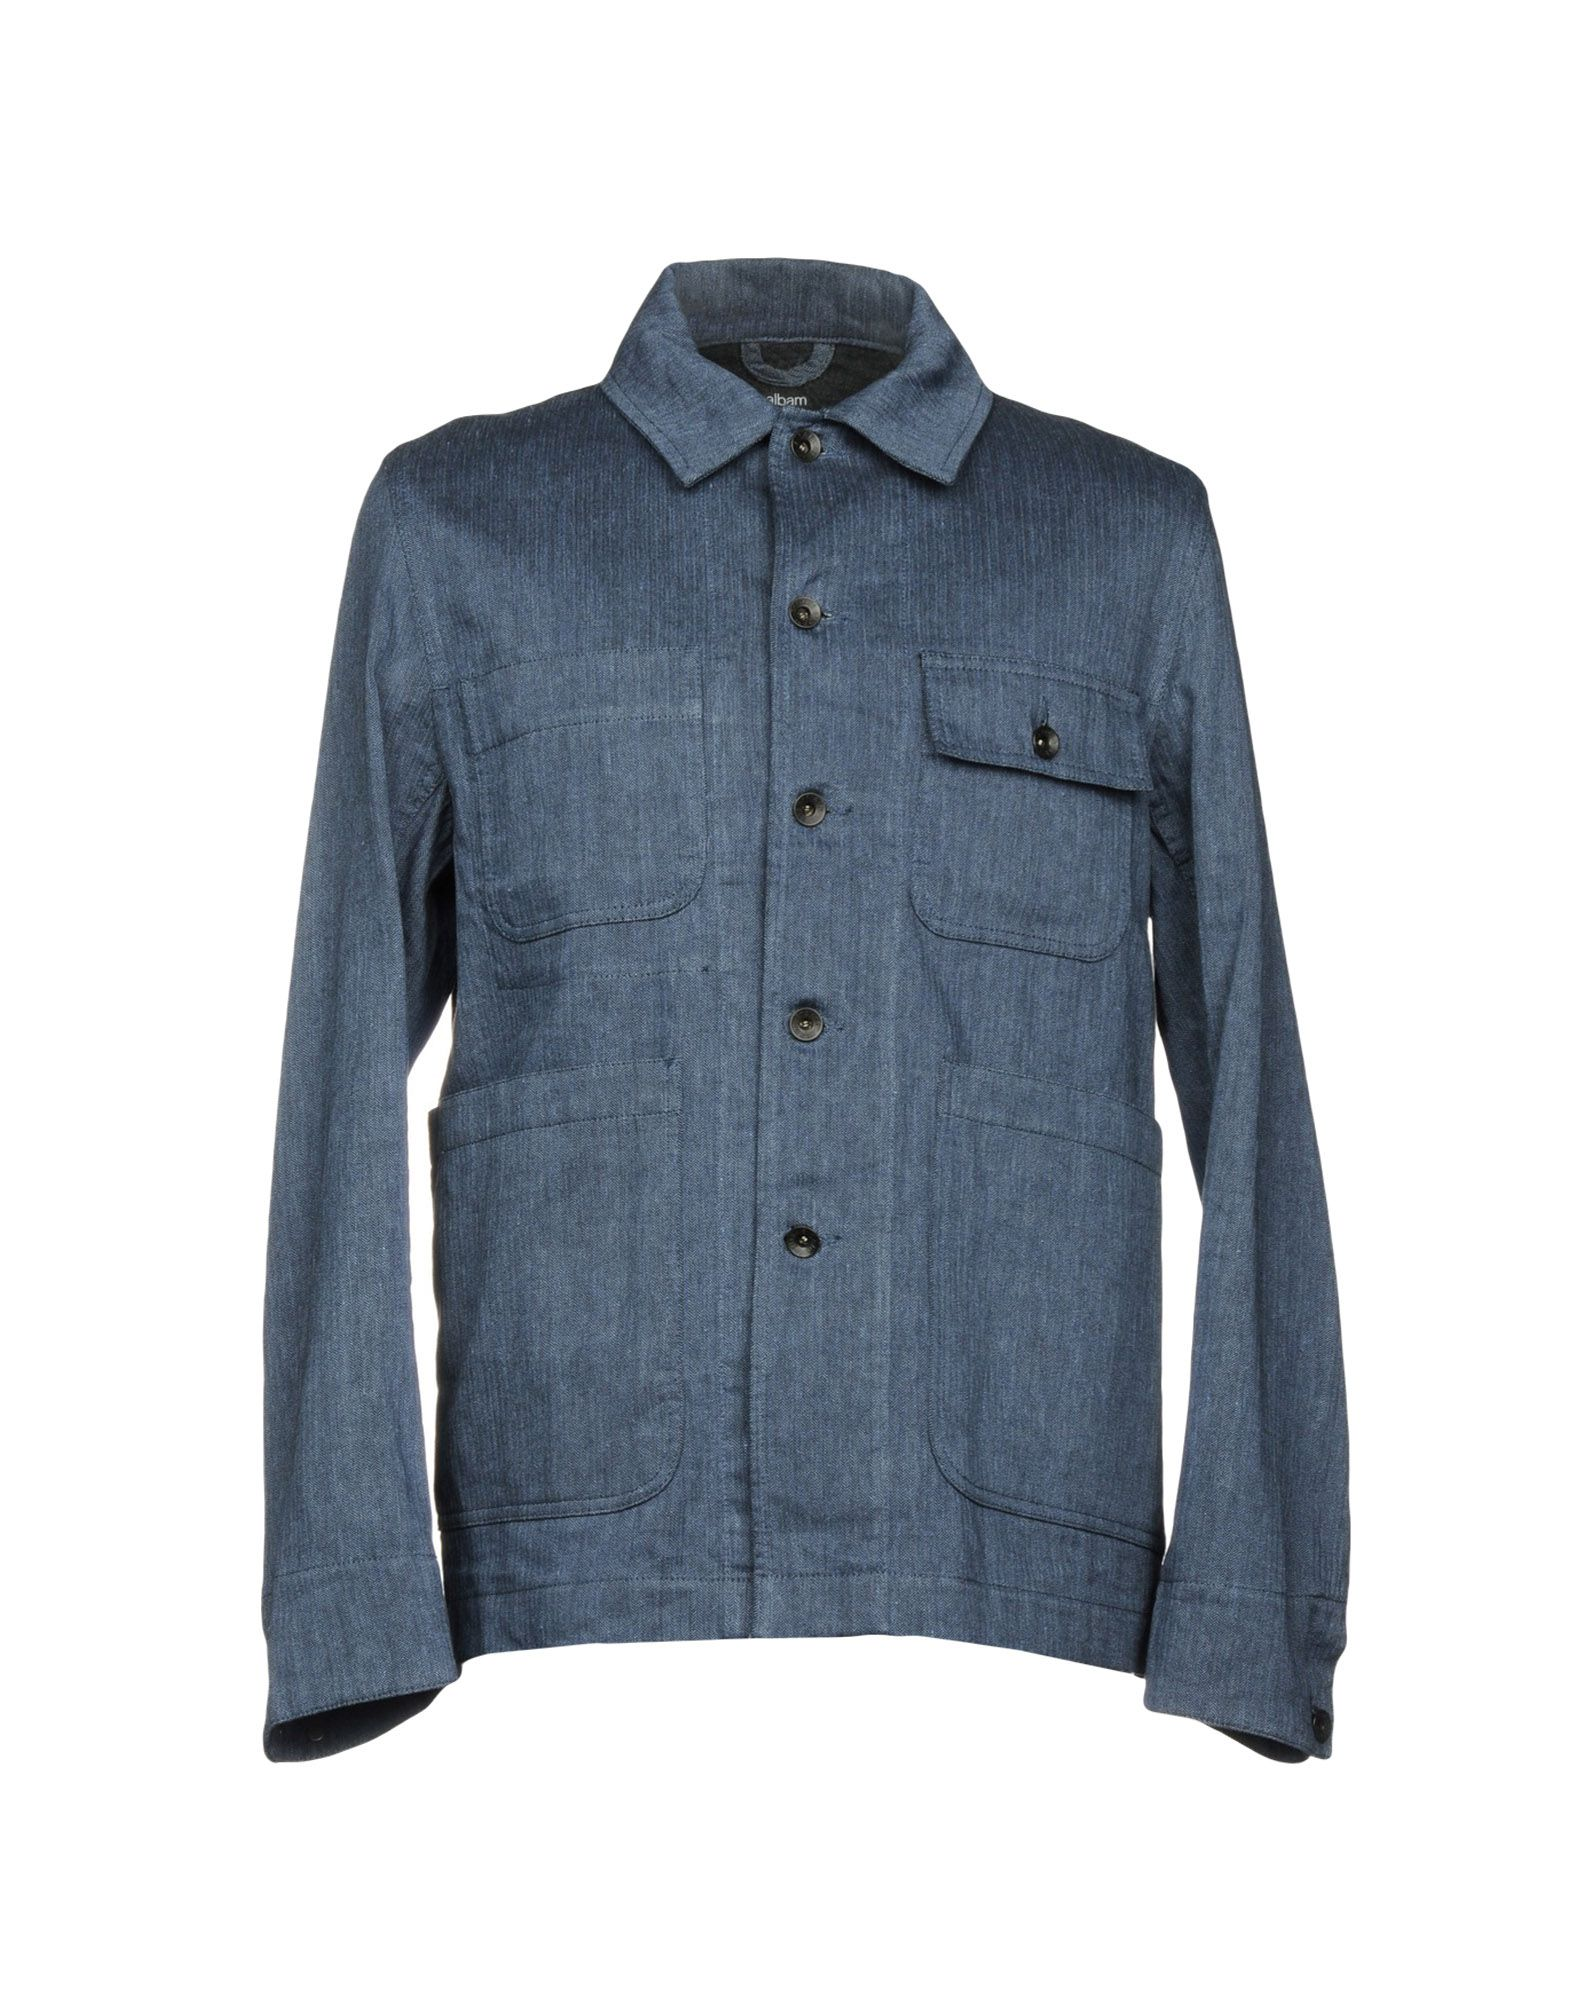 ALBAM Jacket in Blue